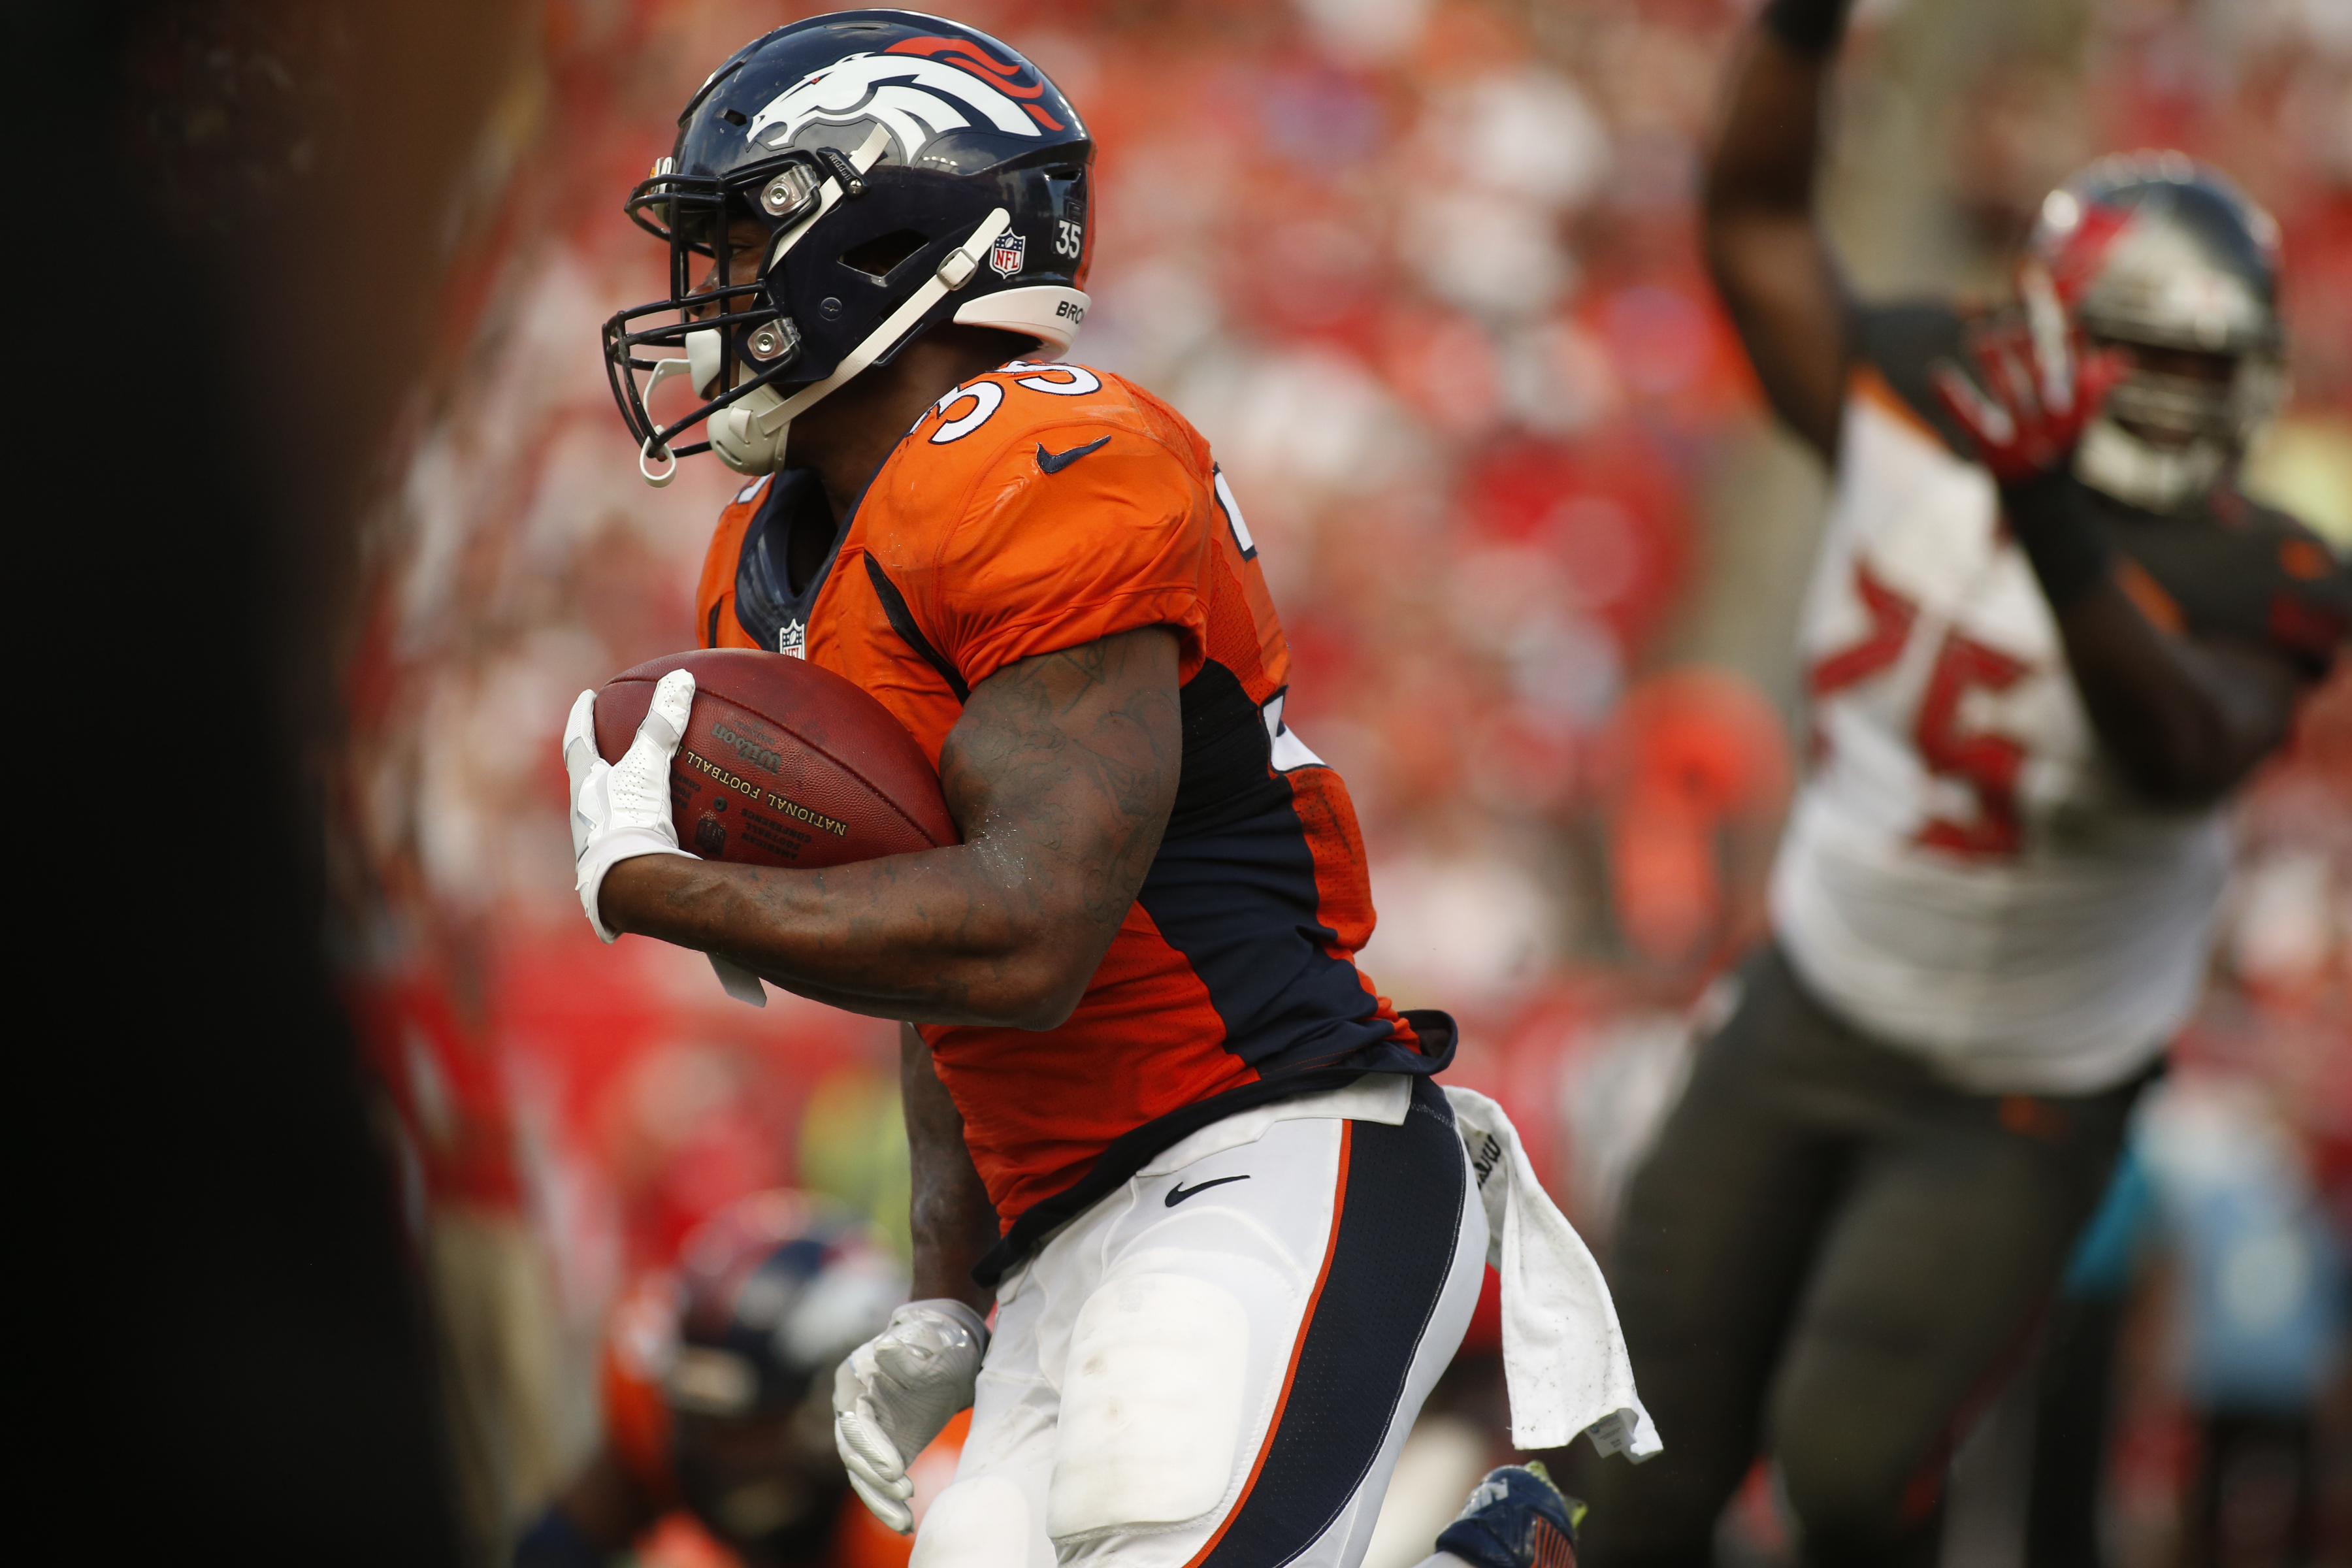 Running back Kapri Bibbs #35 of the Denver Broncos runs for yardage during the fourth quarter of an NFL game against the Tampa Bay Buccaneers on October 2, 2016 at Raymond James Stadium in Tampa, Florida. (Photo by Brian Blanco/Getty Images)